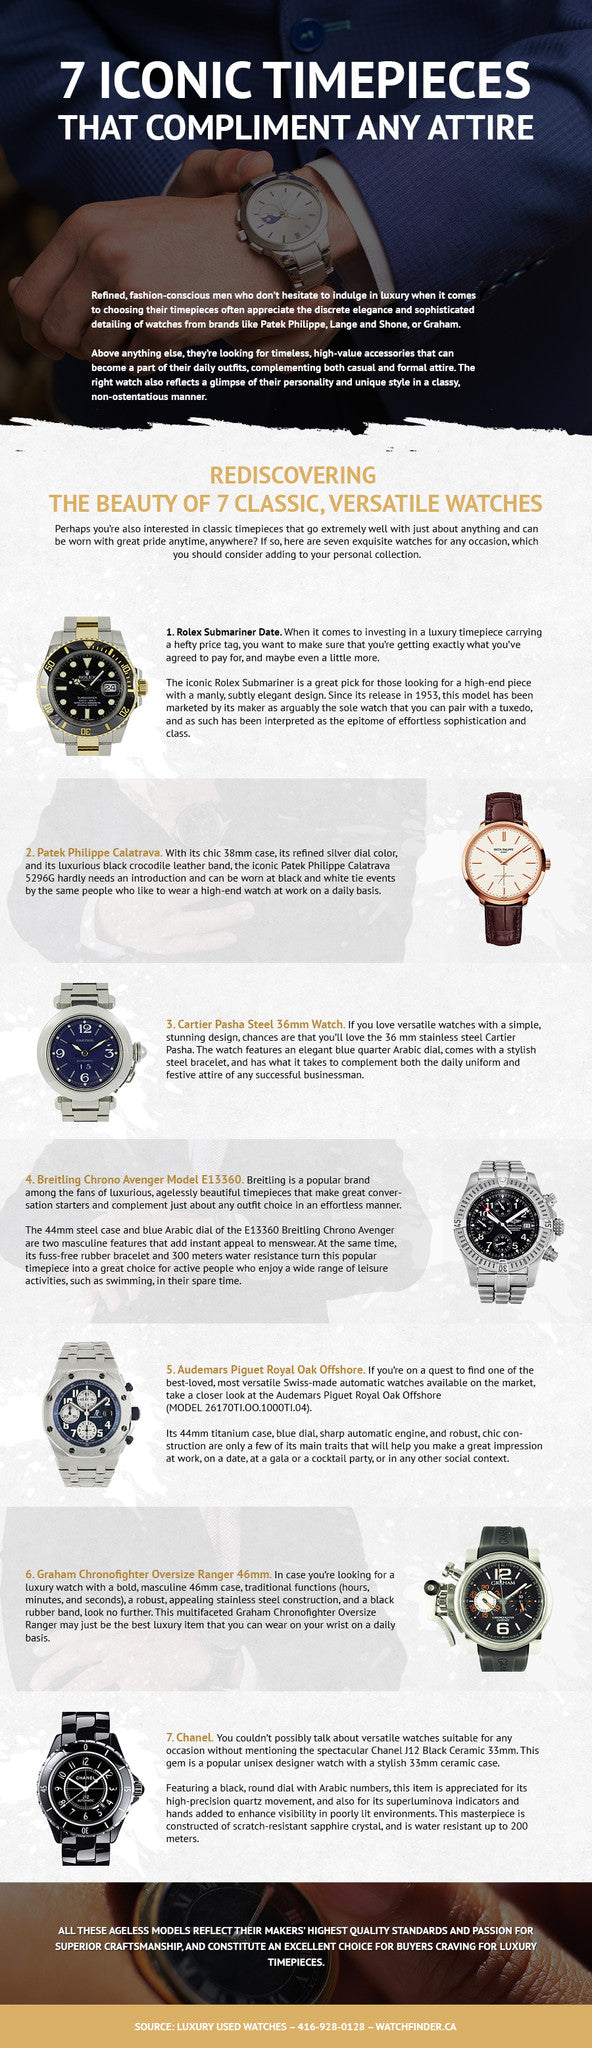 7 Men's Watches for Any Occasion - Infographic